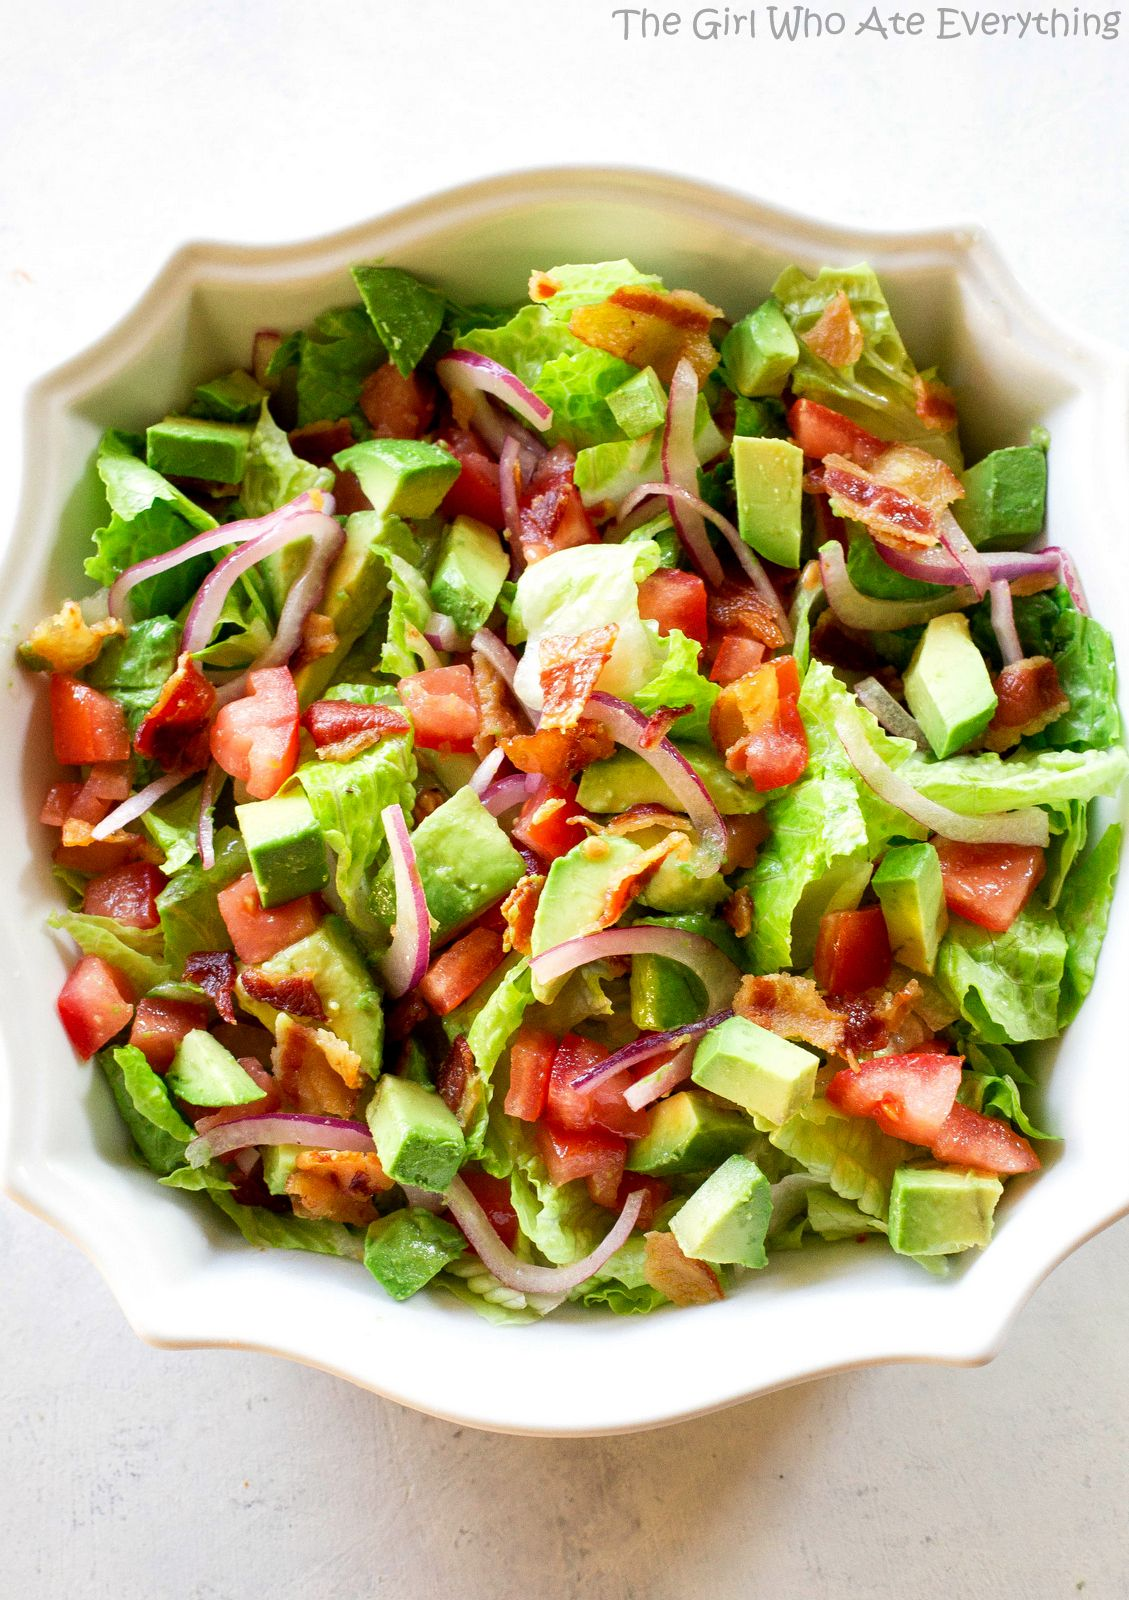 Guacamole Tossed Salad Recipe The Girl Who Ate Everything Recipe Spagetti Salad Recipes Vegetarian Salad Recipes Tossed Salad